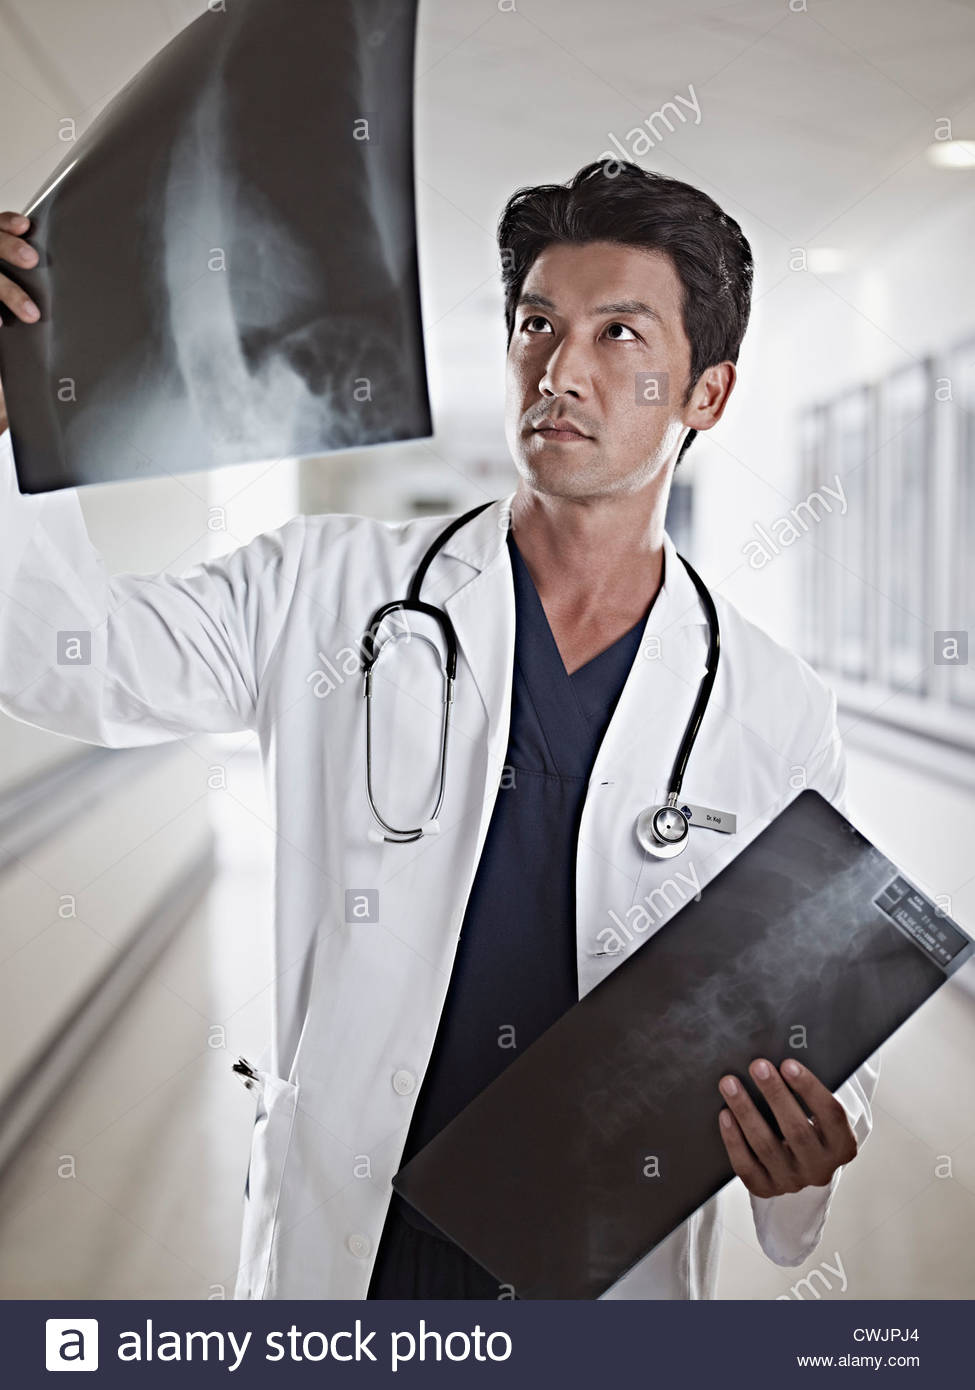 Doctor examining x-rays in hospital corridor - Stock Image